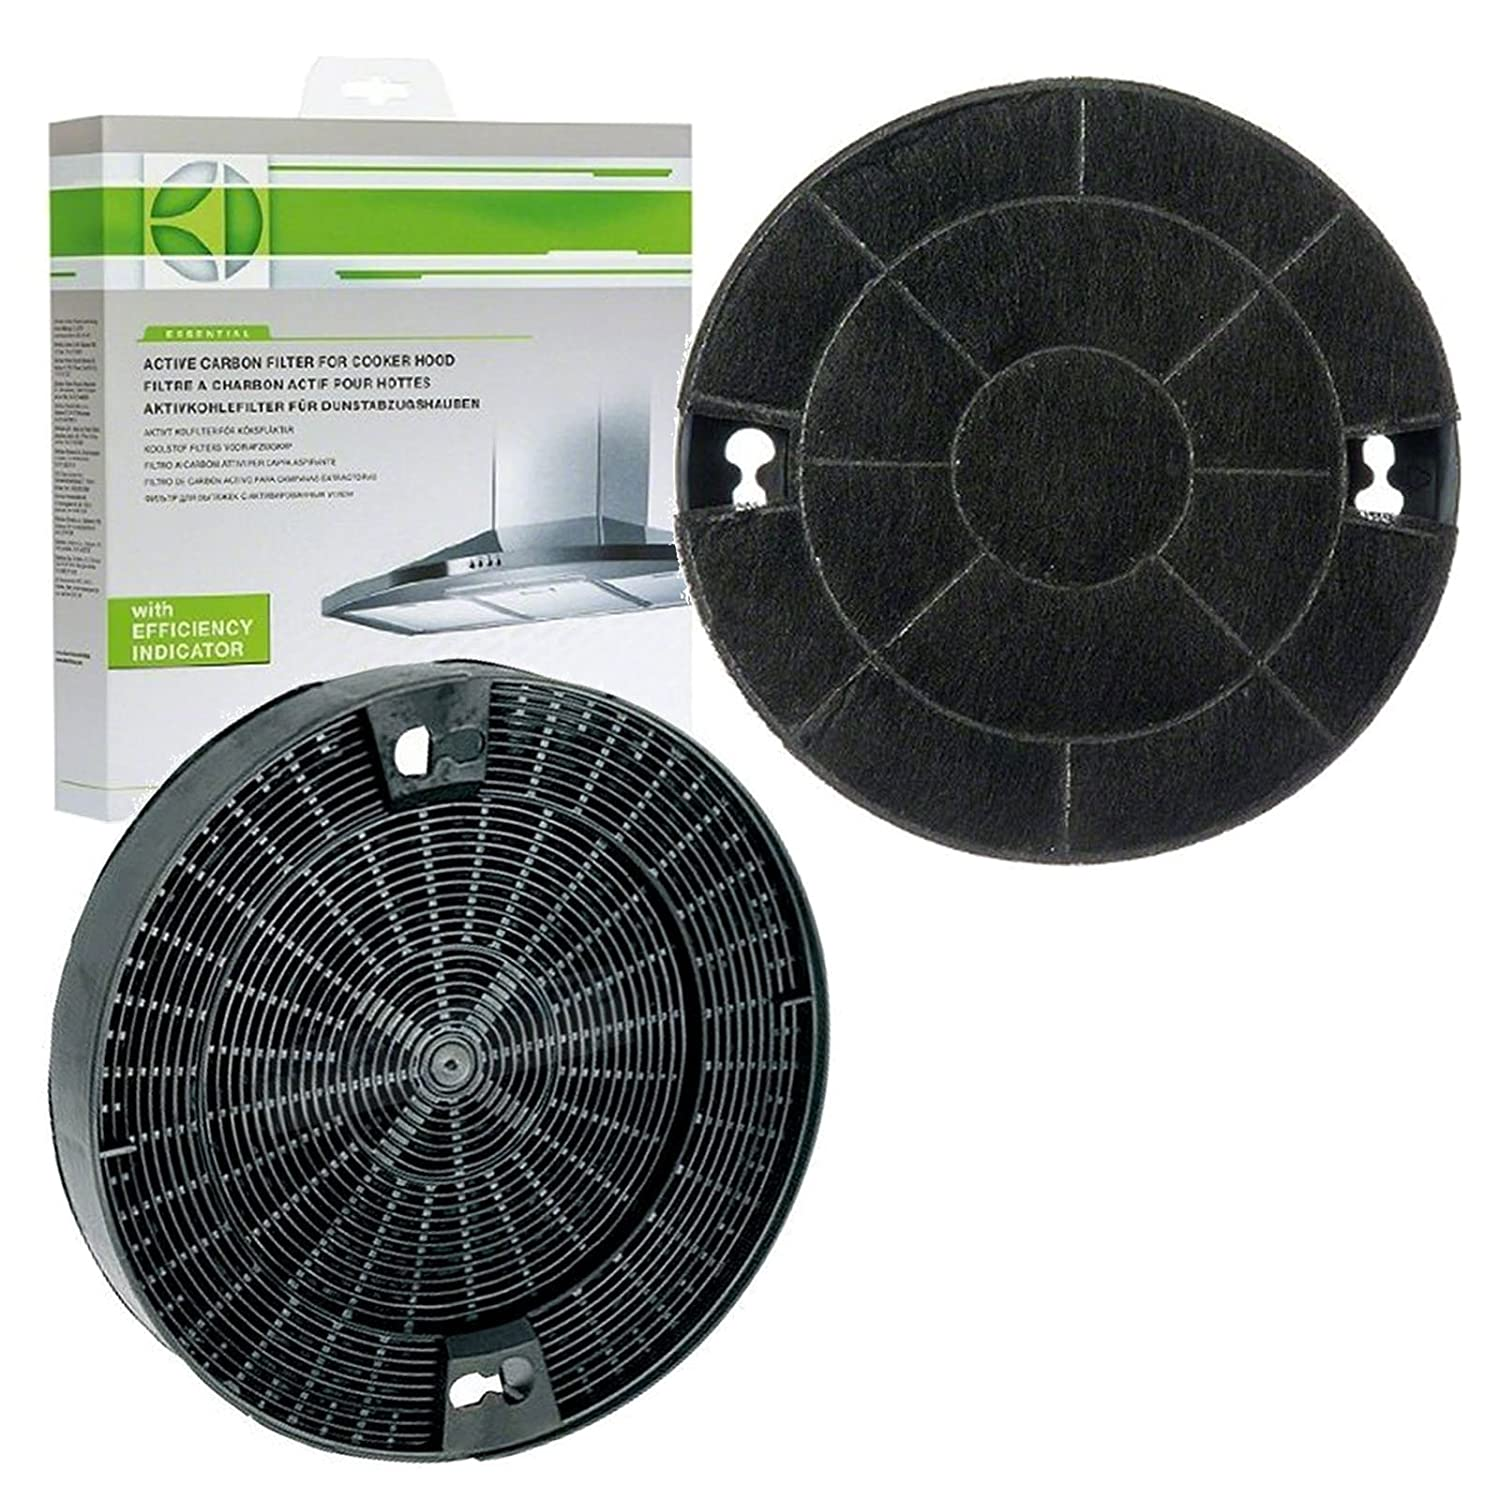 Hood Grease Filter Genuine Electrolux Type 29 Charcoal Carbon Cooker Hood Vent Filter